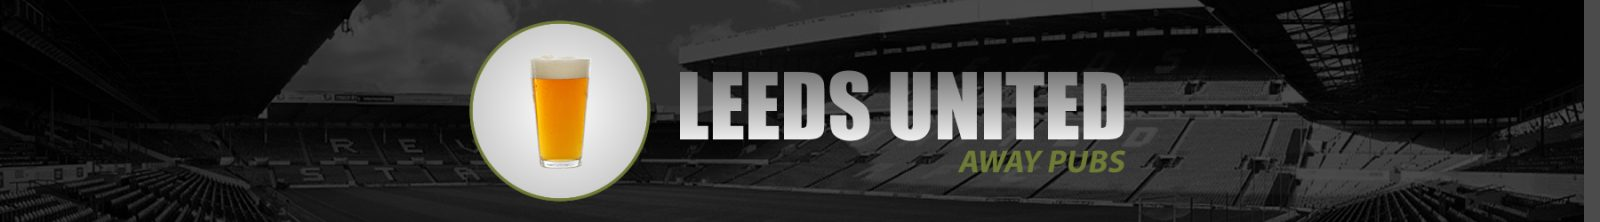 Leeds United Away Pubs